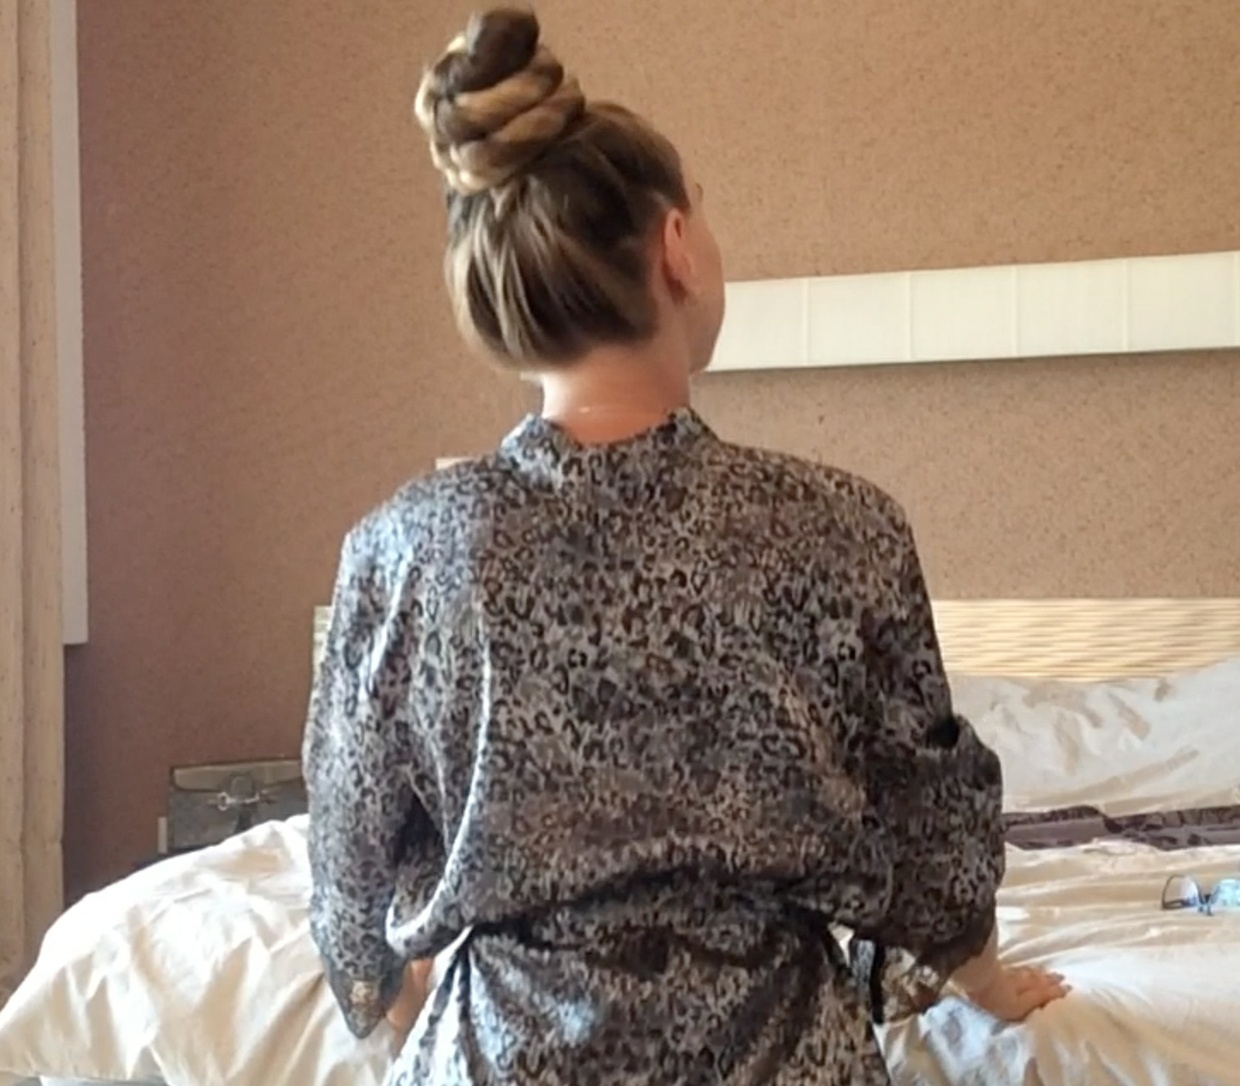 VIDEO - Kateryna´s knee length hair play in bed